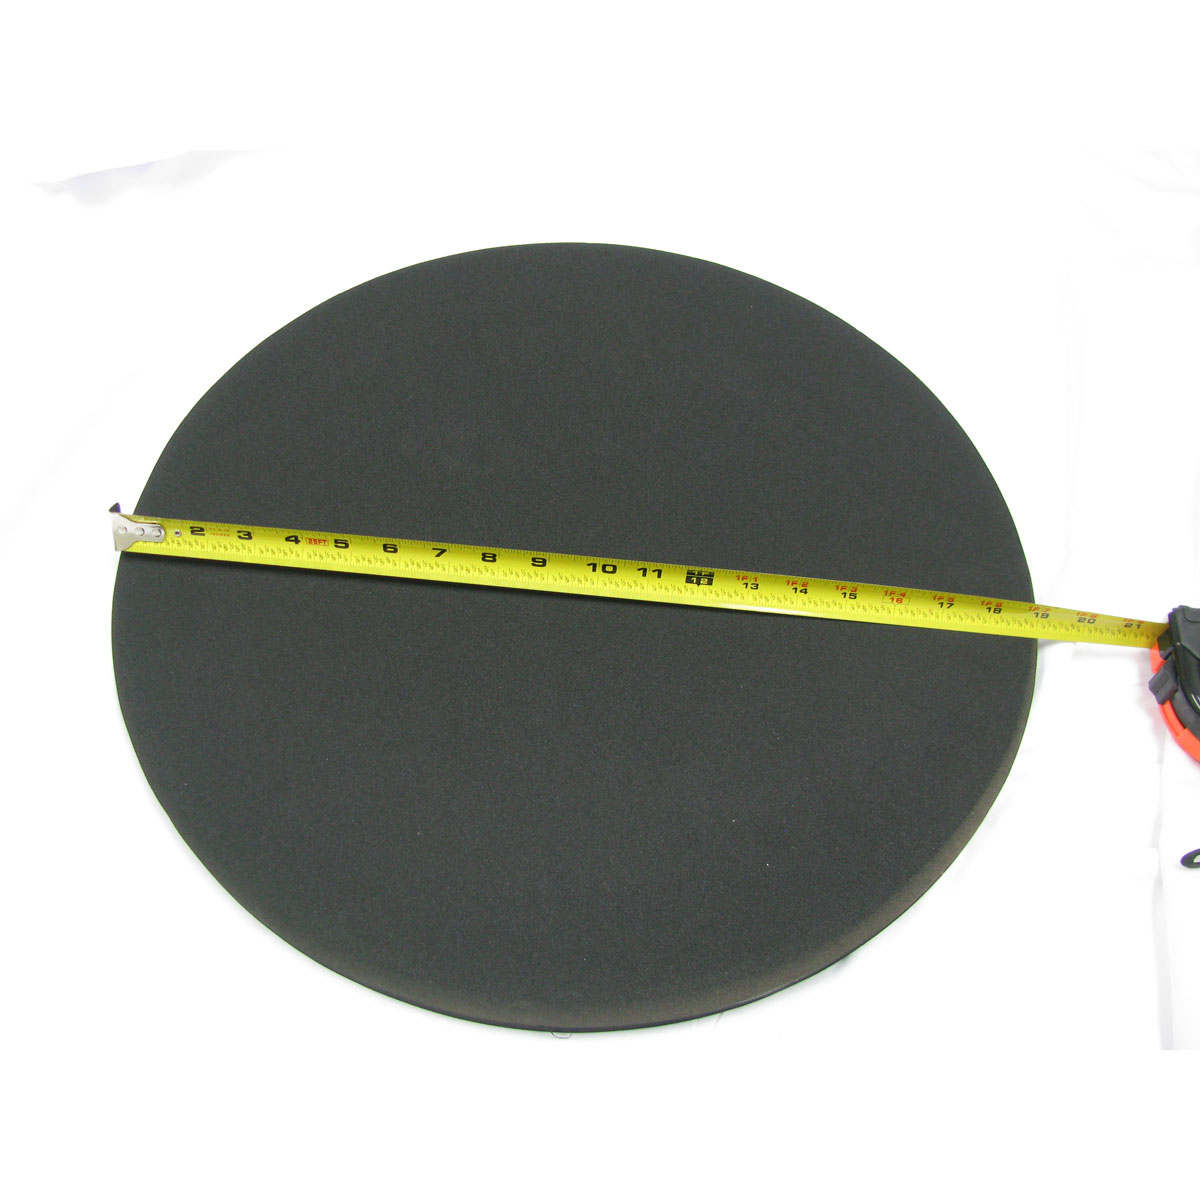 Gasket Waste Tank 19 in Diameter X 5/8in thick sponge rubber closed cell and Heater Insulation